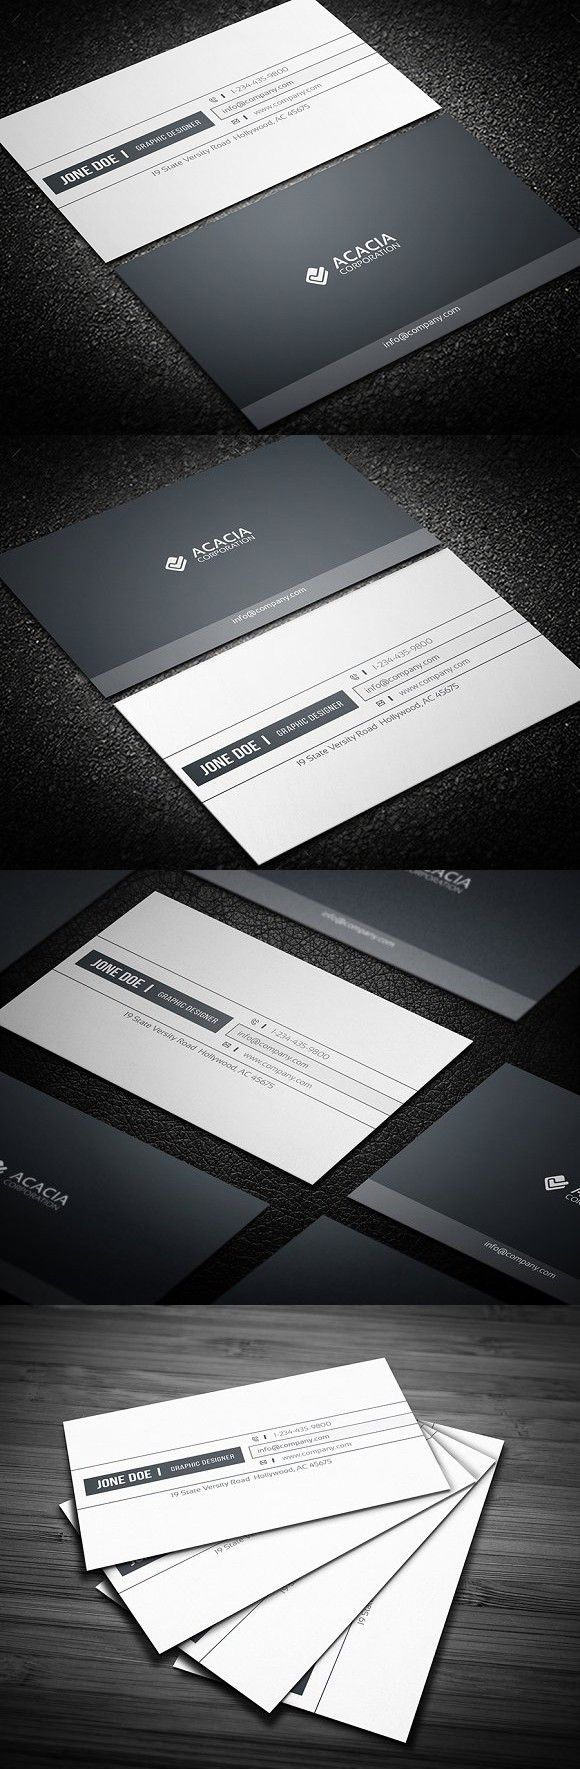 127 best card images on pinterest business card templates simple business card magicingreecefo Images